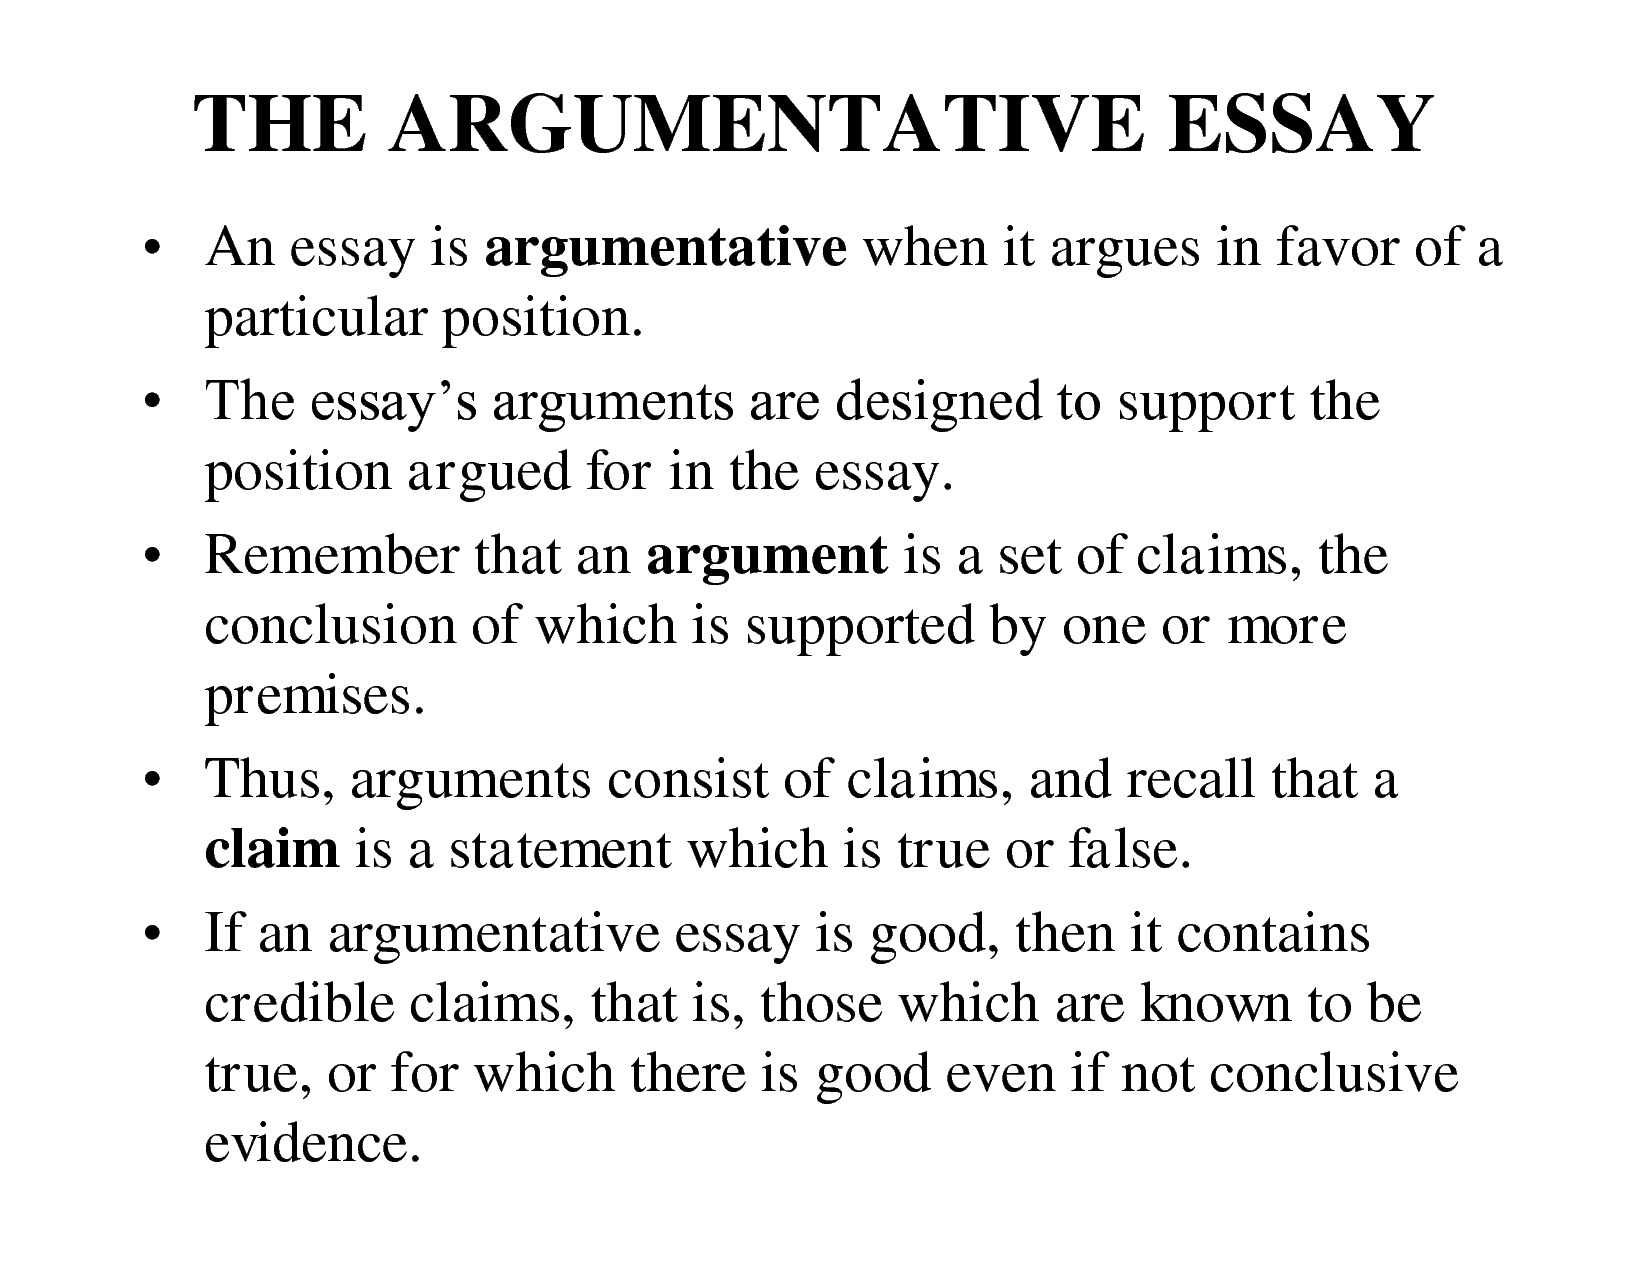 012 How To Start An Essay Conclusion Example Ways Write For Argumentative On Abo Body Paragraph With Quote Abortion Examples Introduction Thesis Unusual A History Sentence Expository Full